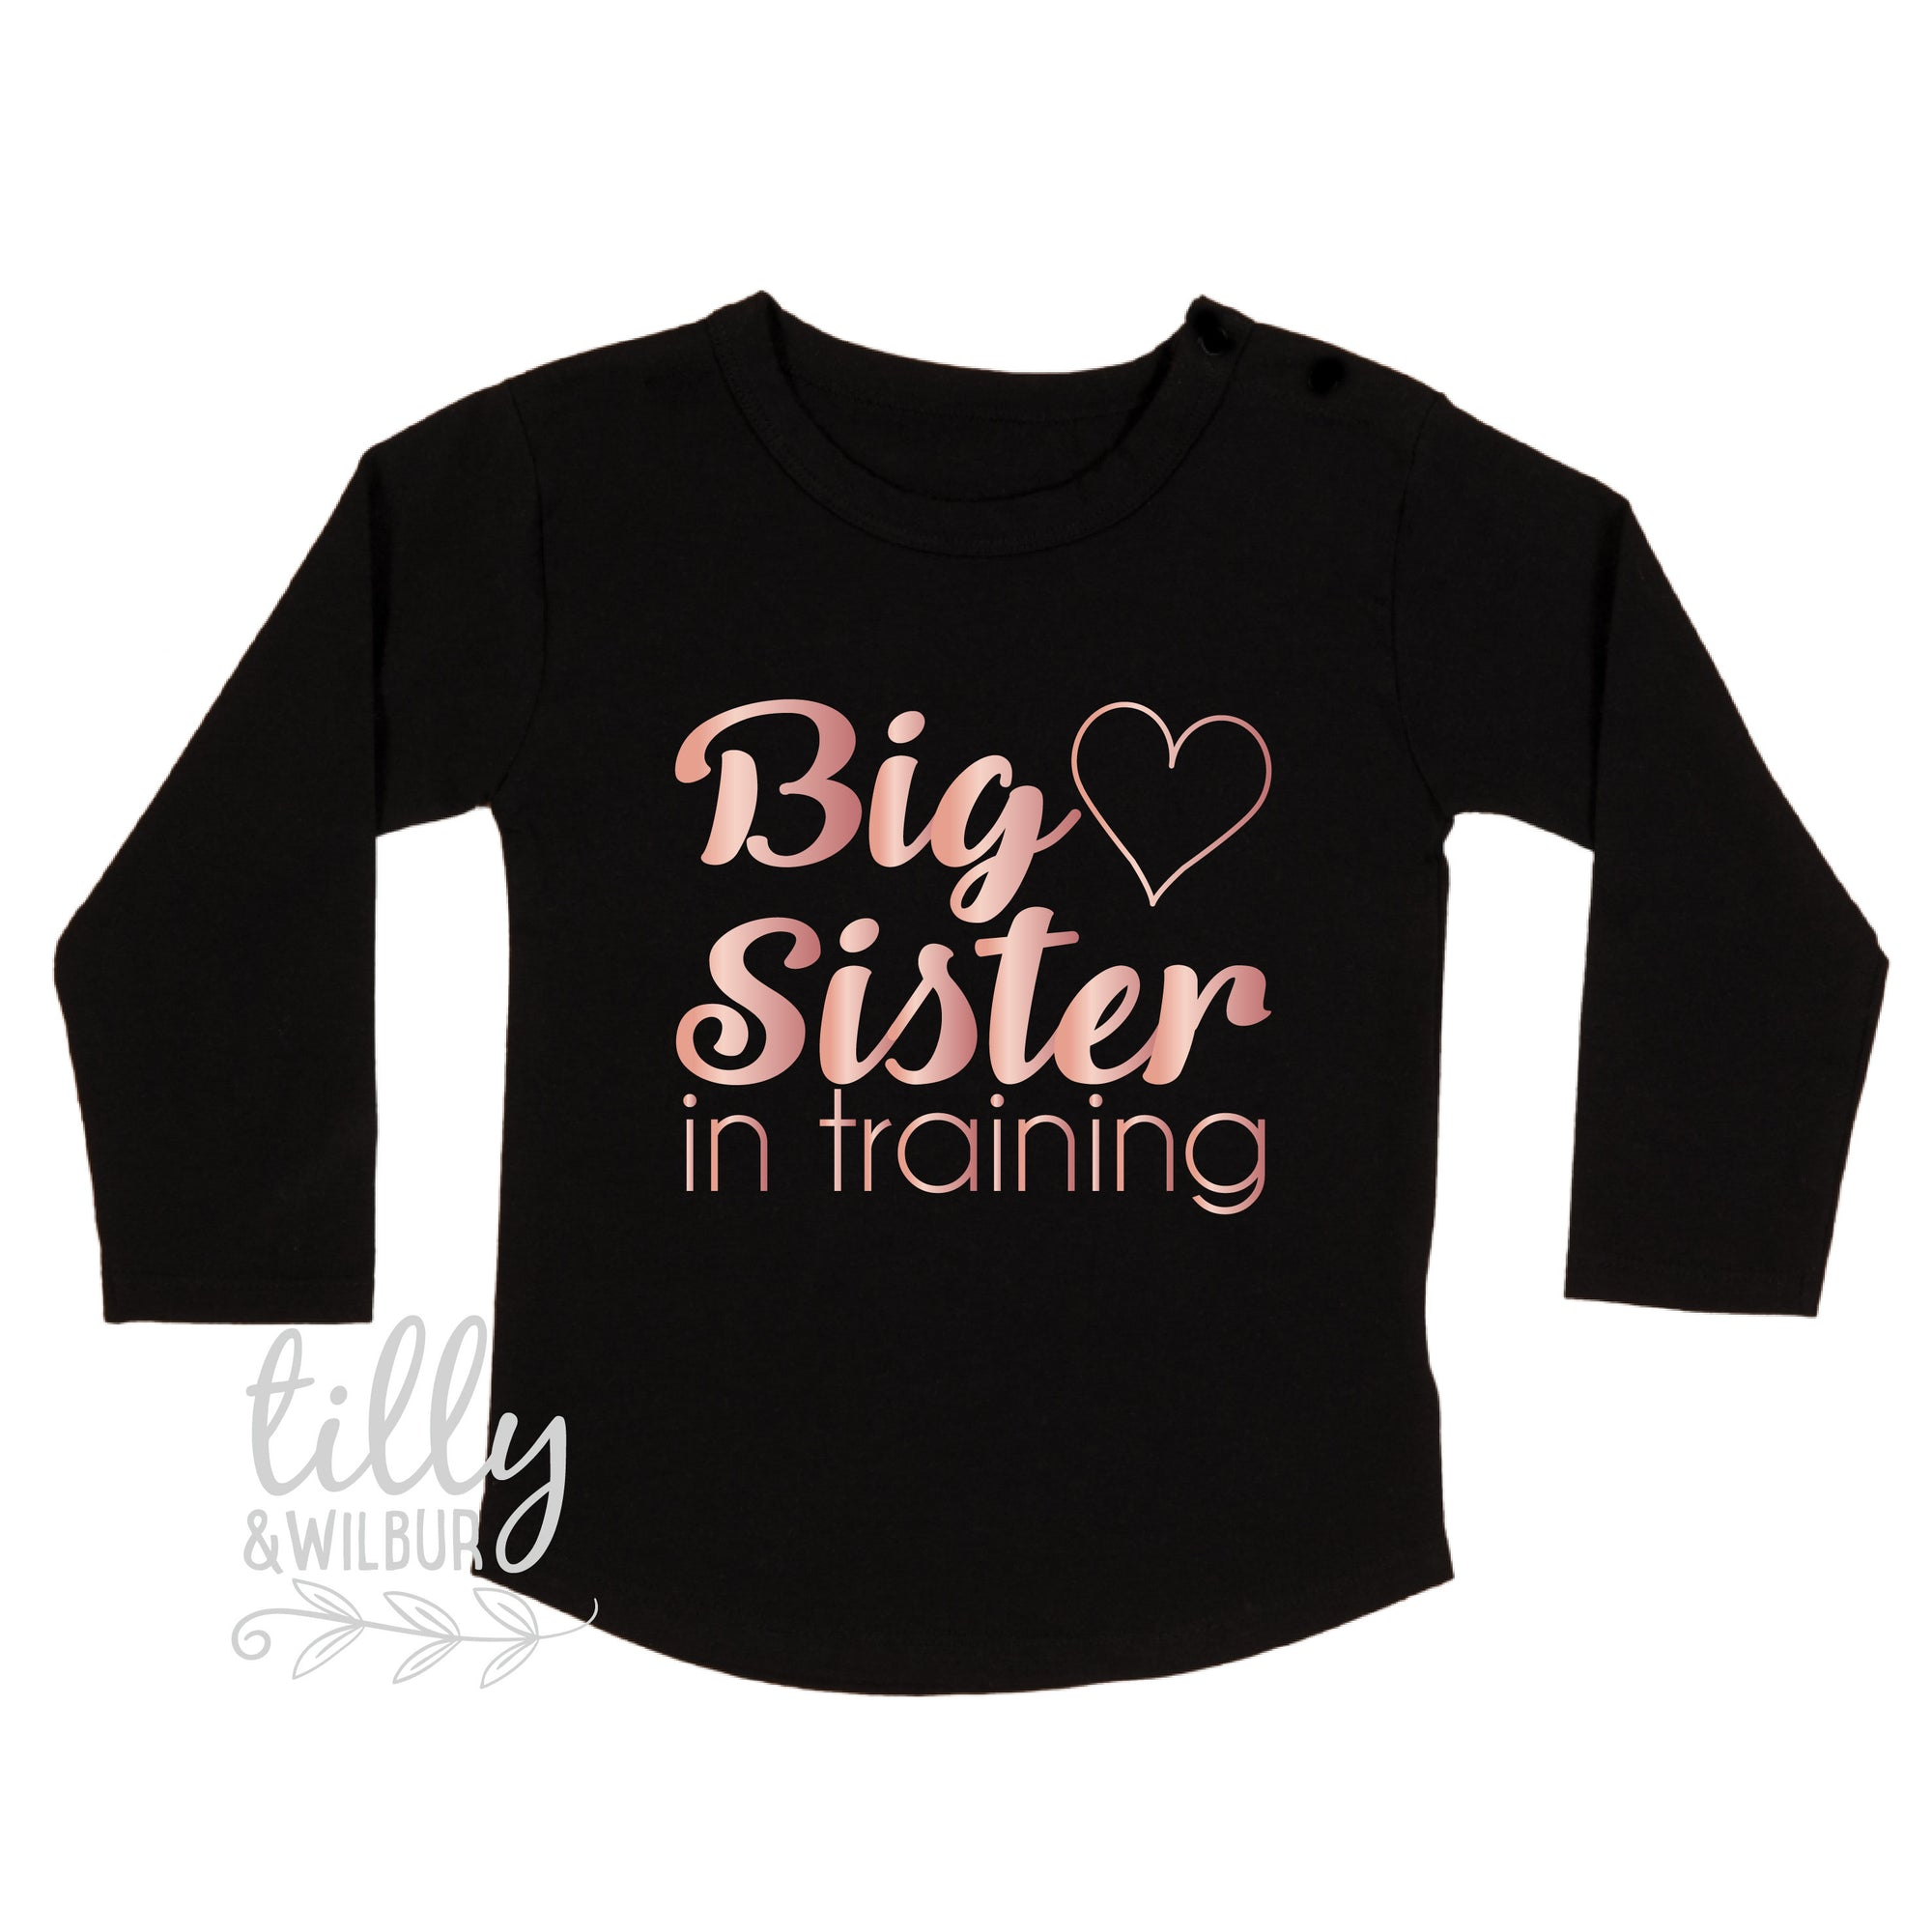 Big Sister In Training Girls T-Shirt, Pregnancy Announcement T-shirt, Promoted To Big Sister, Sister Shirt, Big Sister Shirt, Announcement